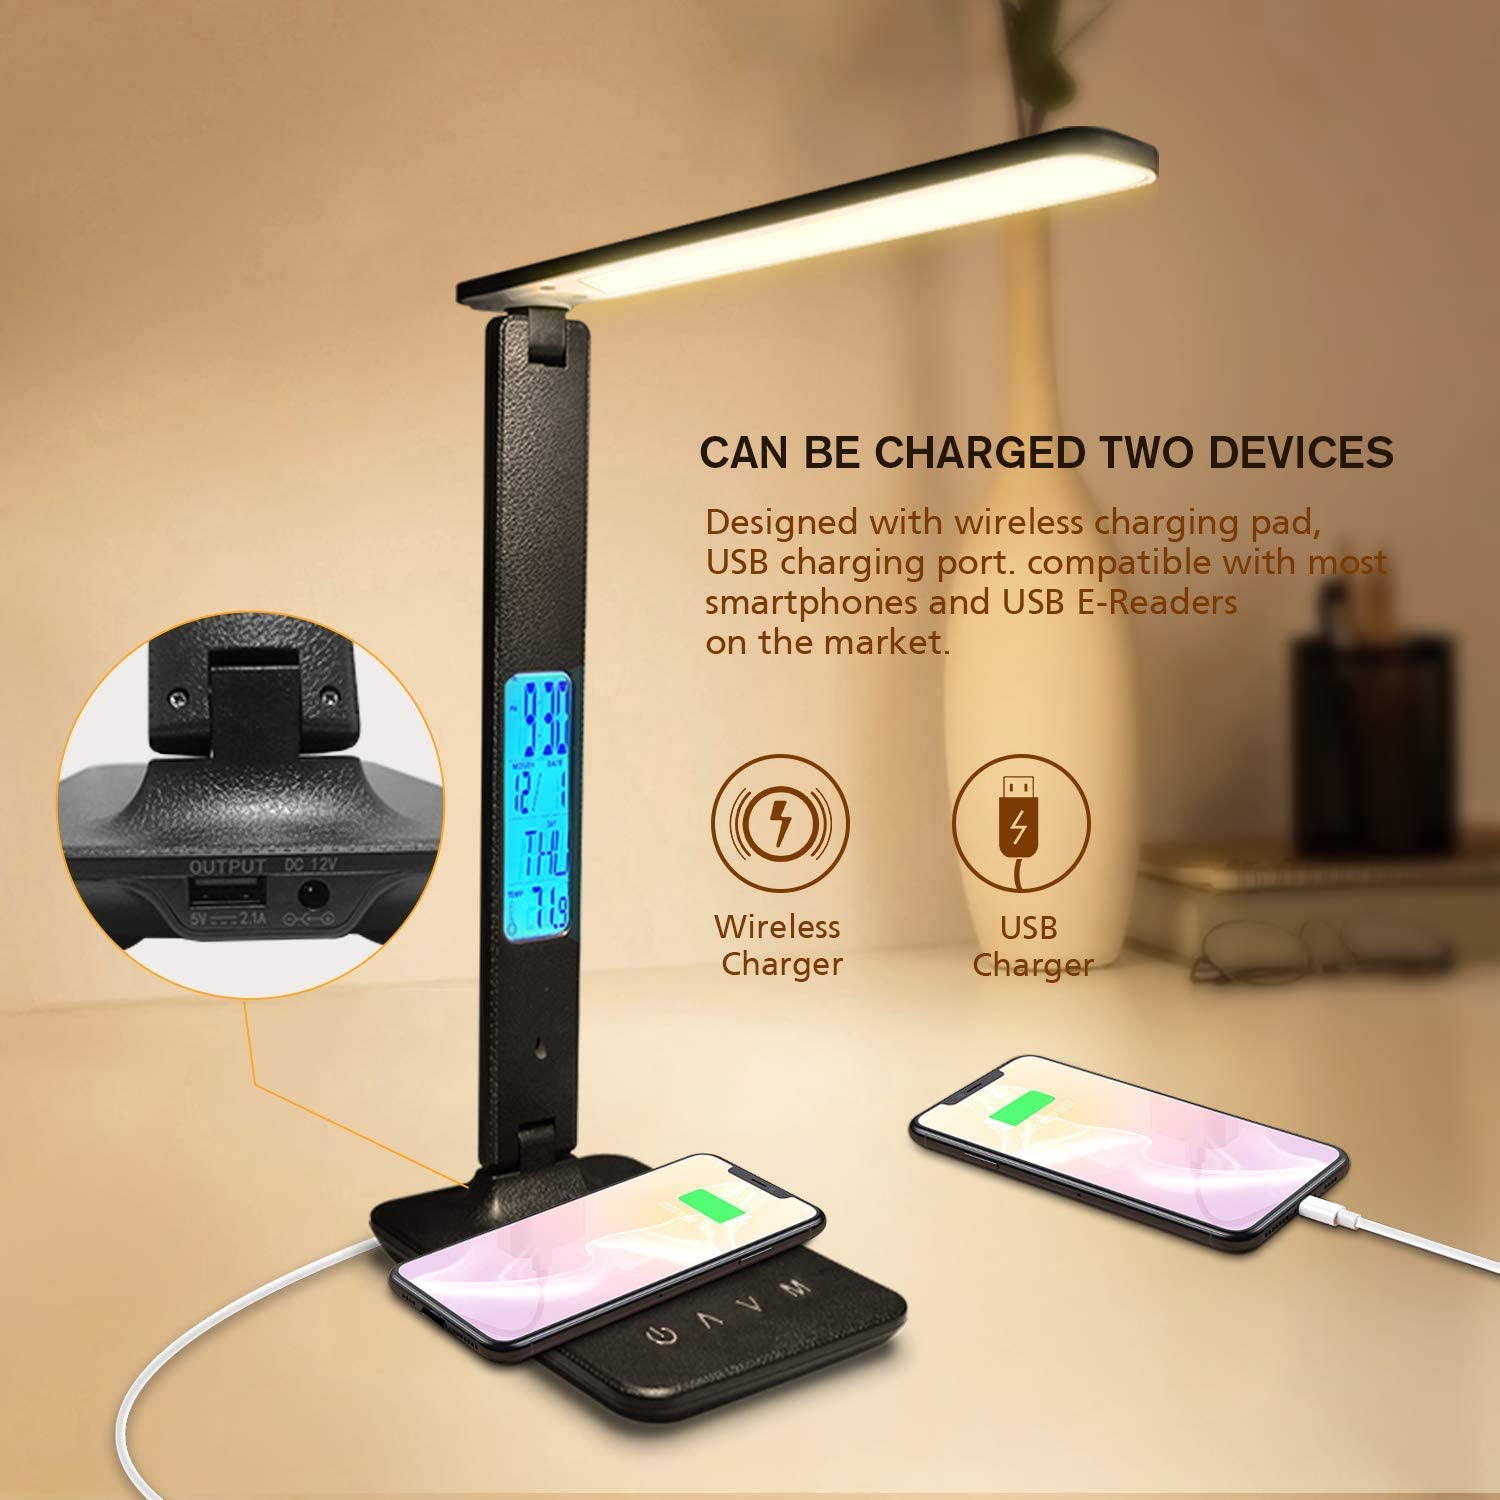 LAOPAO QI Wireless Charging LED Desk Lamp 10W With Calendar Temperature Alarm Clock Eye Protect Reading Light Table Lamp 2020 2